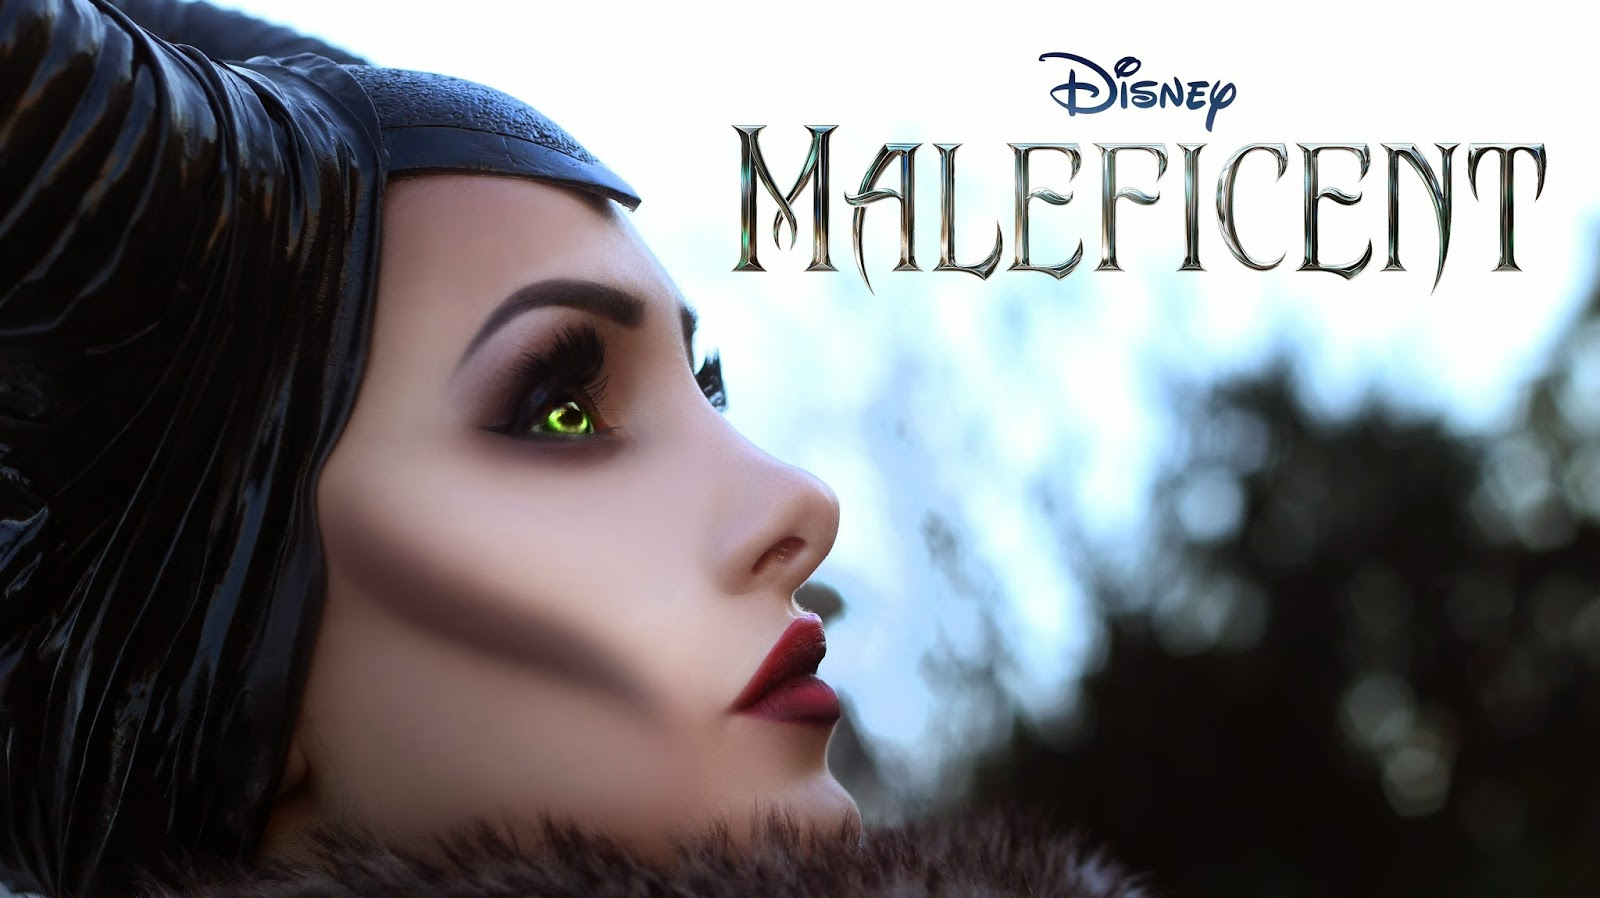 Maleficent Hd Movie Full Movie Download Free Maleficent